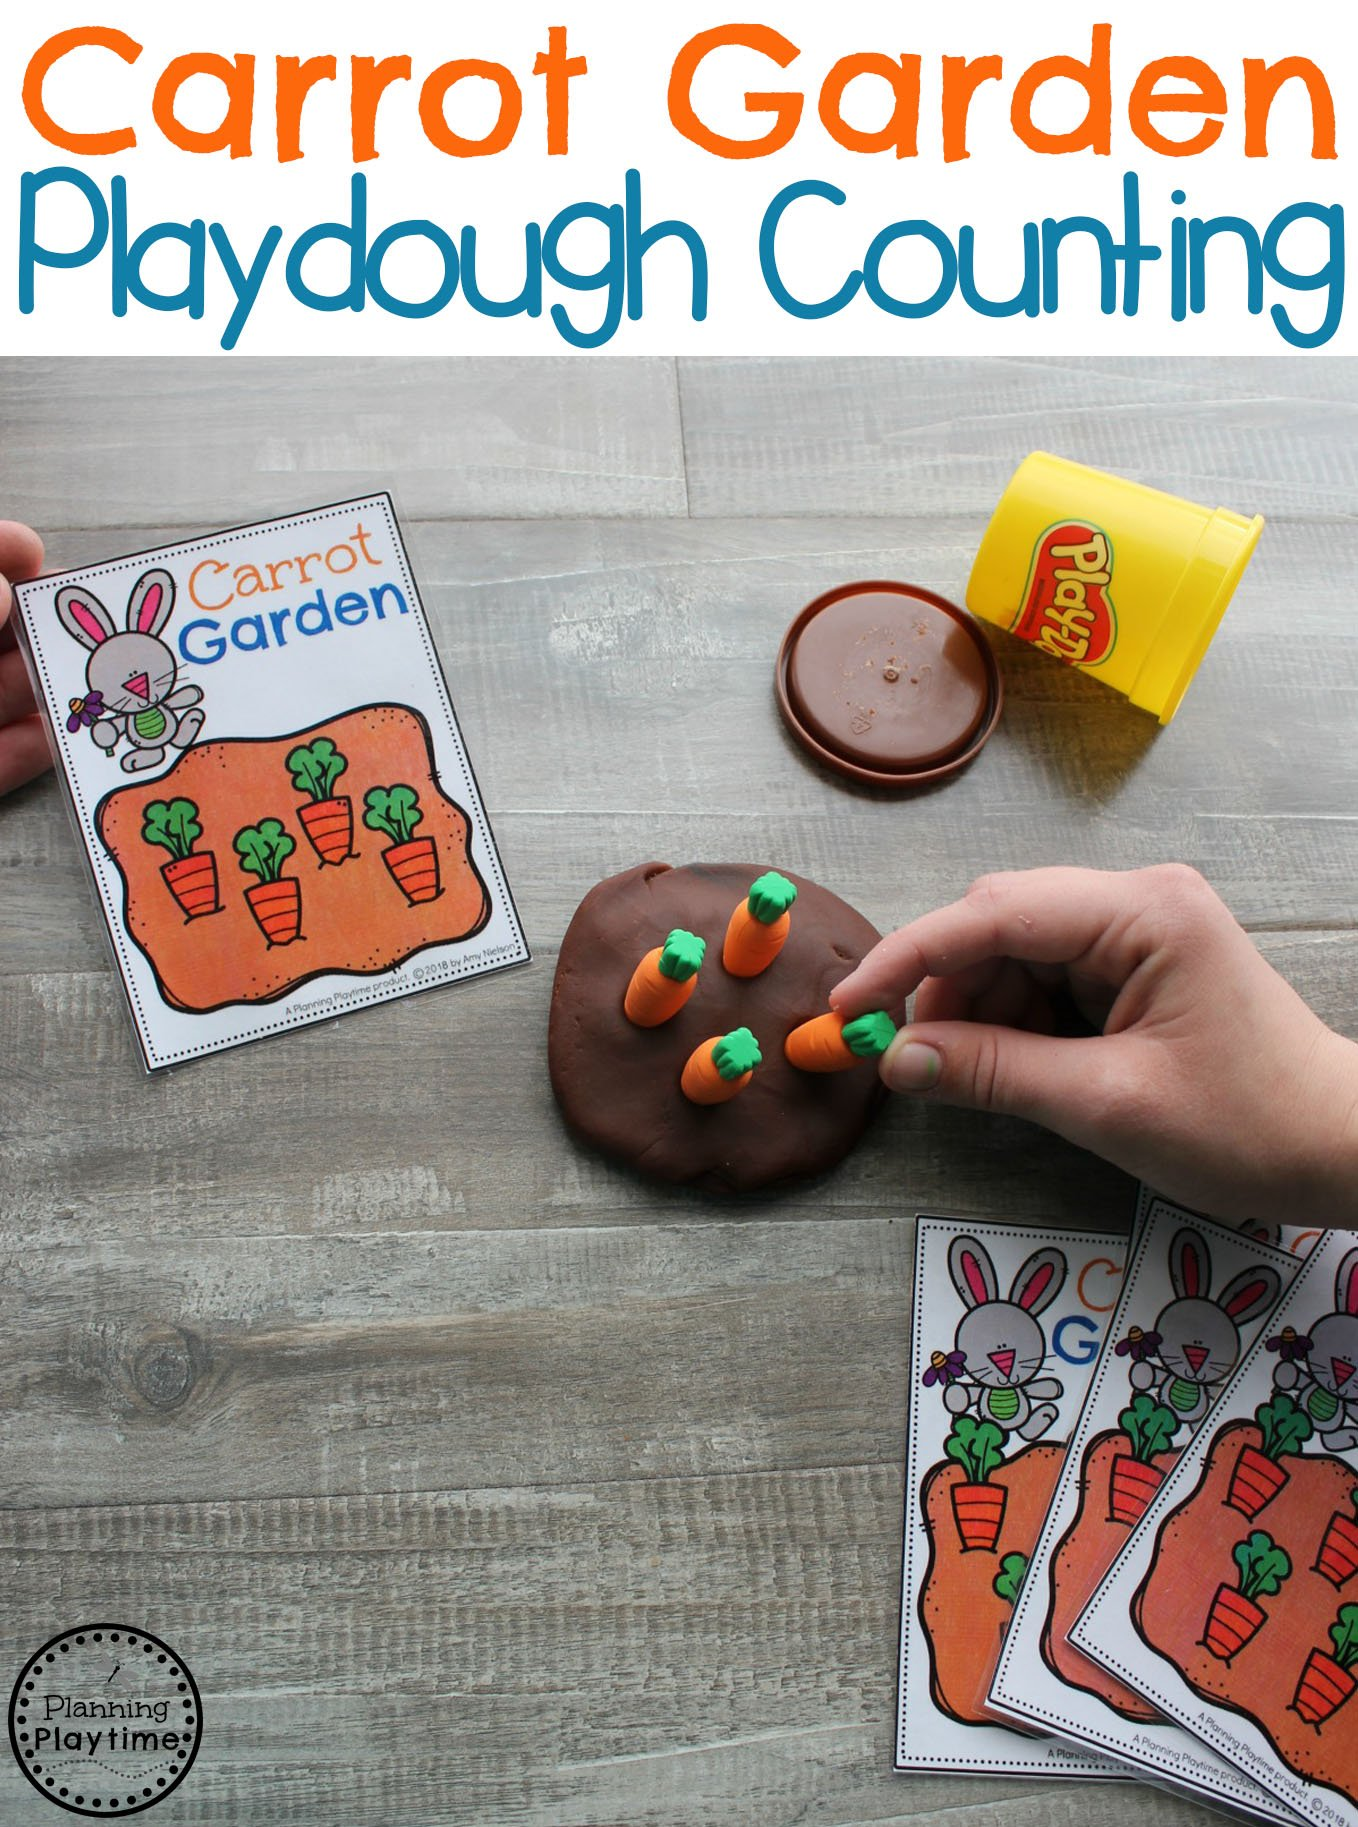 Preschool Easter Games - Carrot Garden Counting #easter #preschool #easteractivities #easterpreschool #planningplaytime #preschoolmath #preschoolcounting